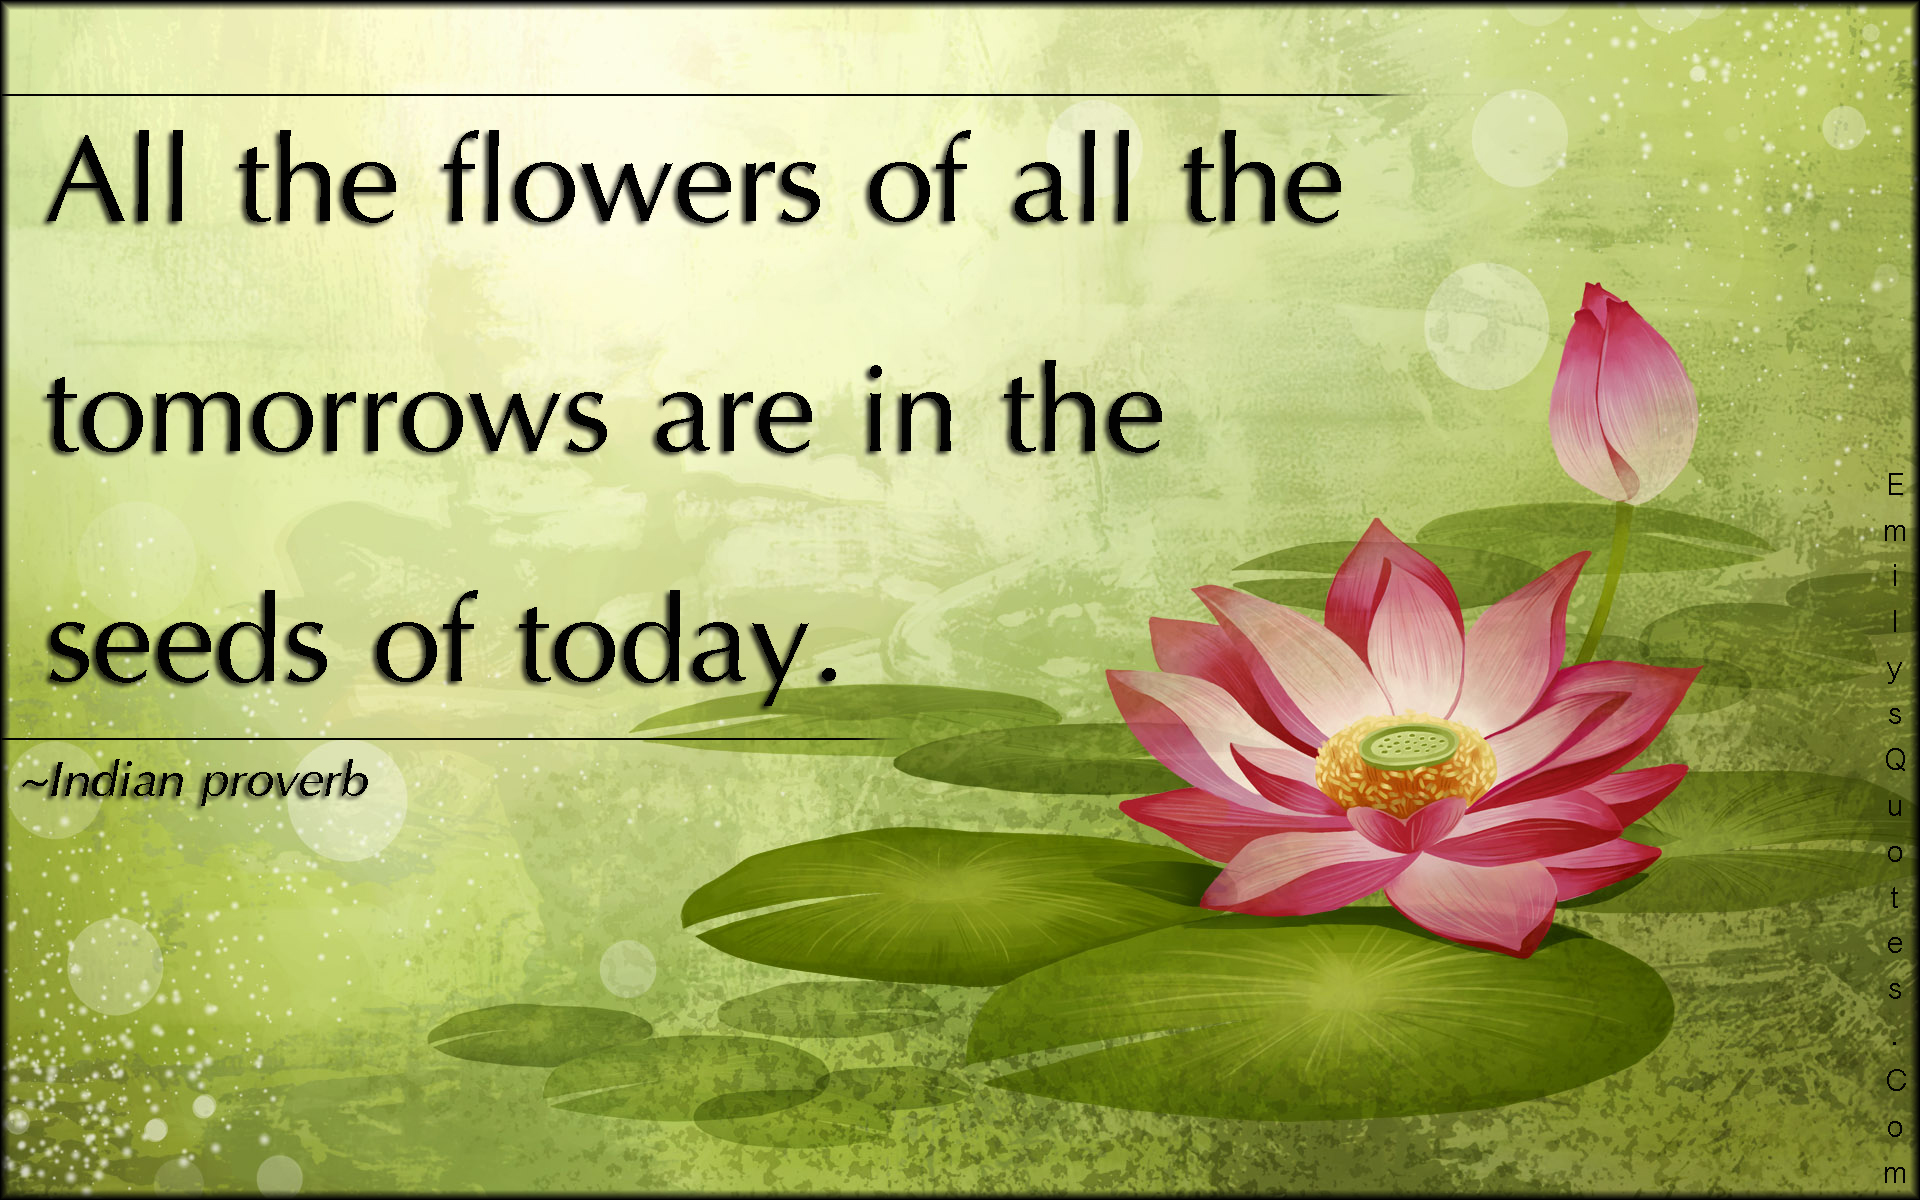 Quotes Related To Life All The Flowers Of All The Tomorrows Are In The Seeds Of Today